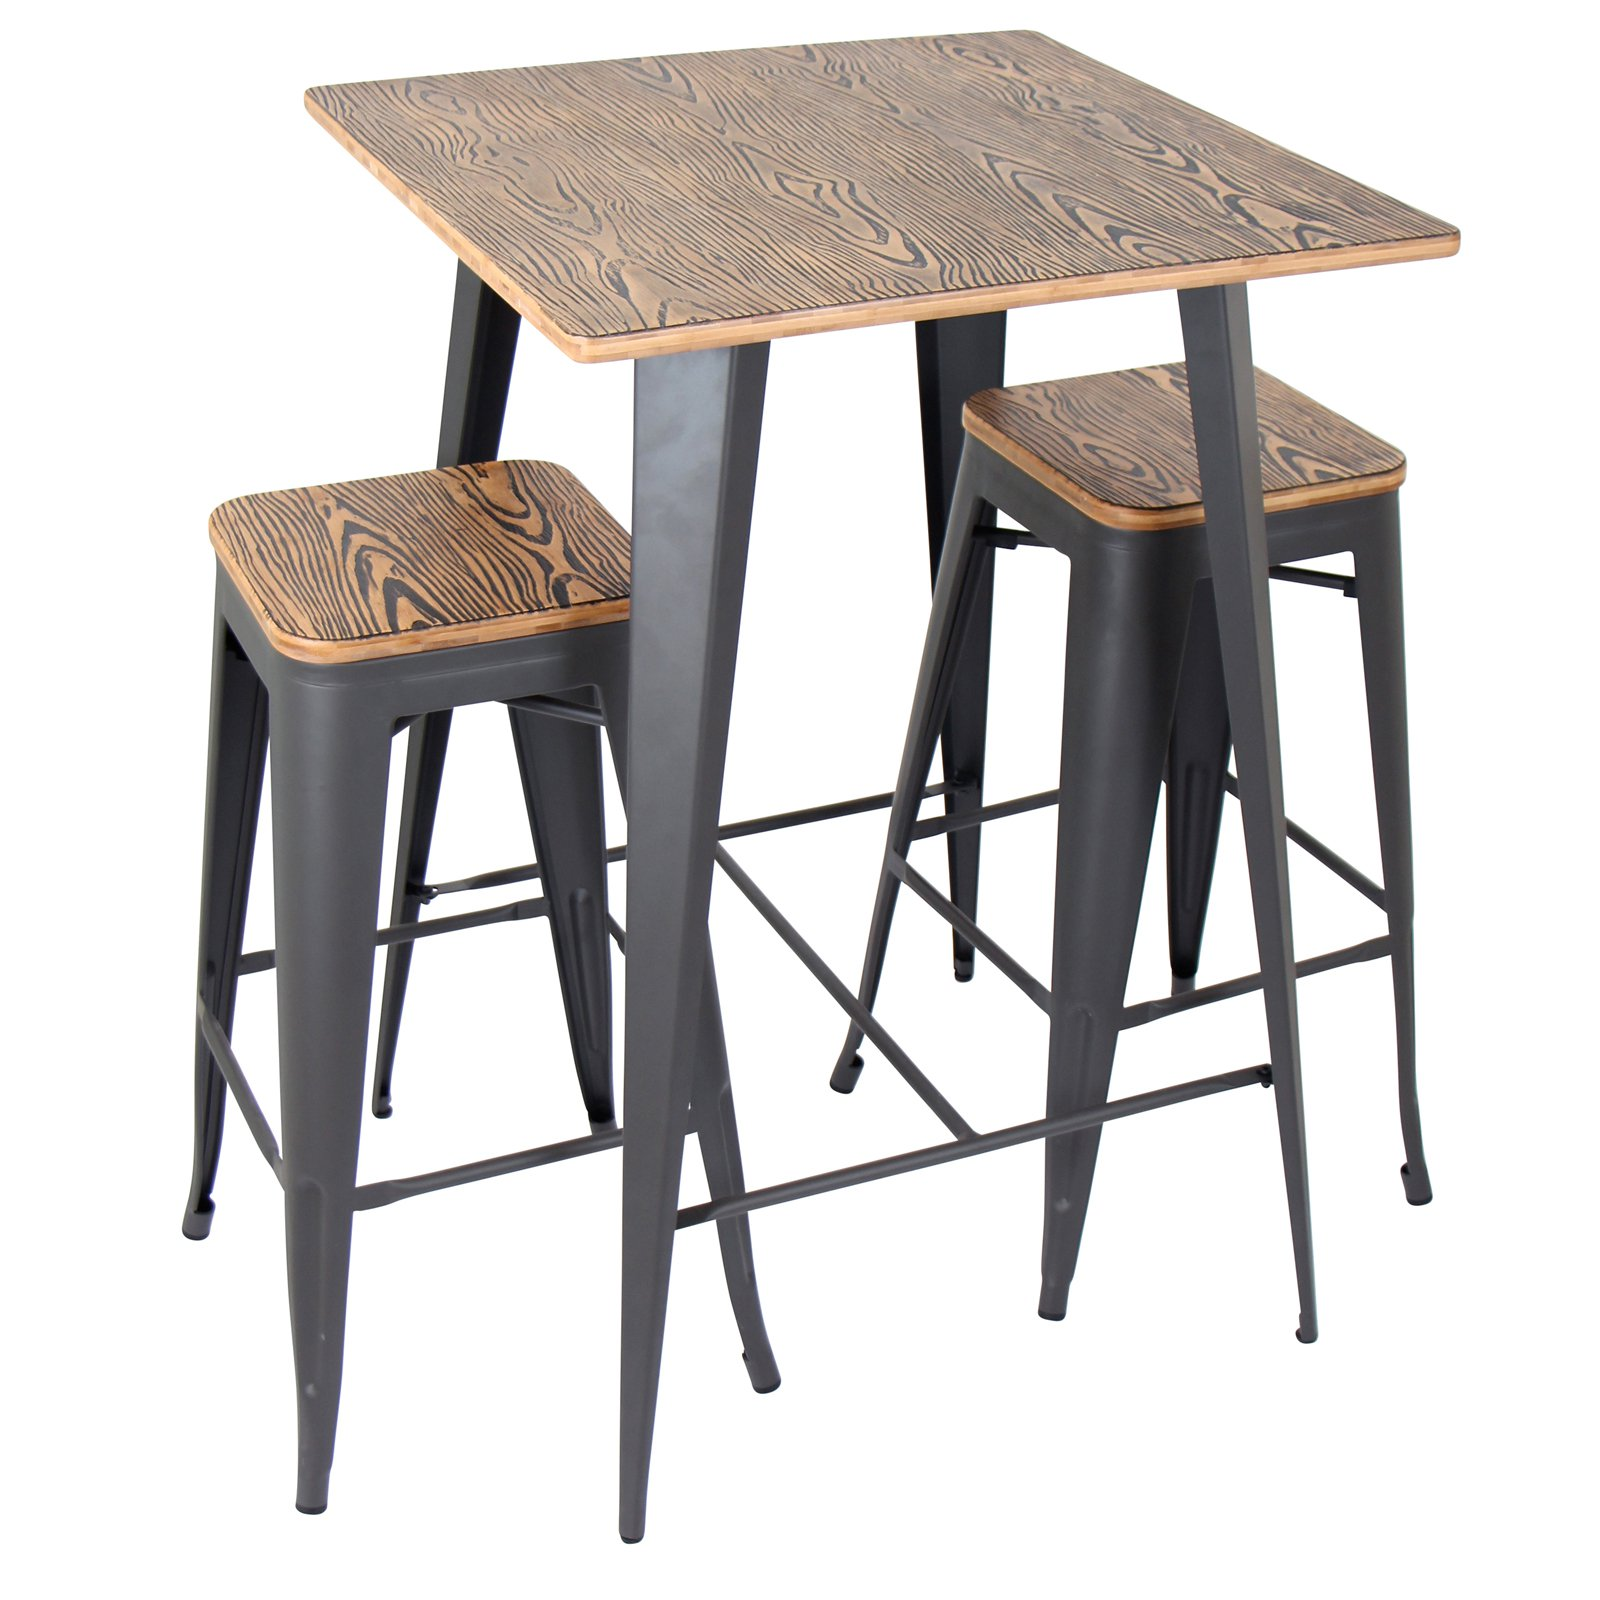 Oregon 3 Piece Industrial Pub Set In Grey And Brown By Lumisource